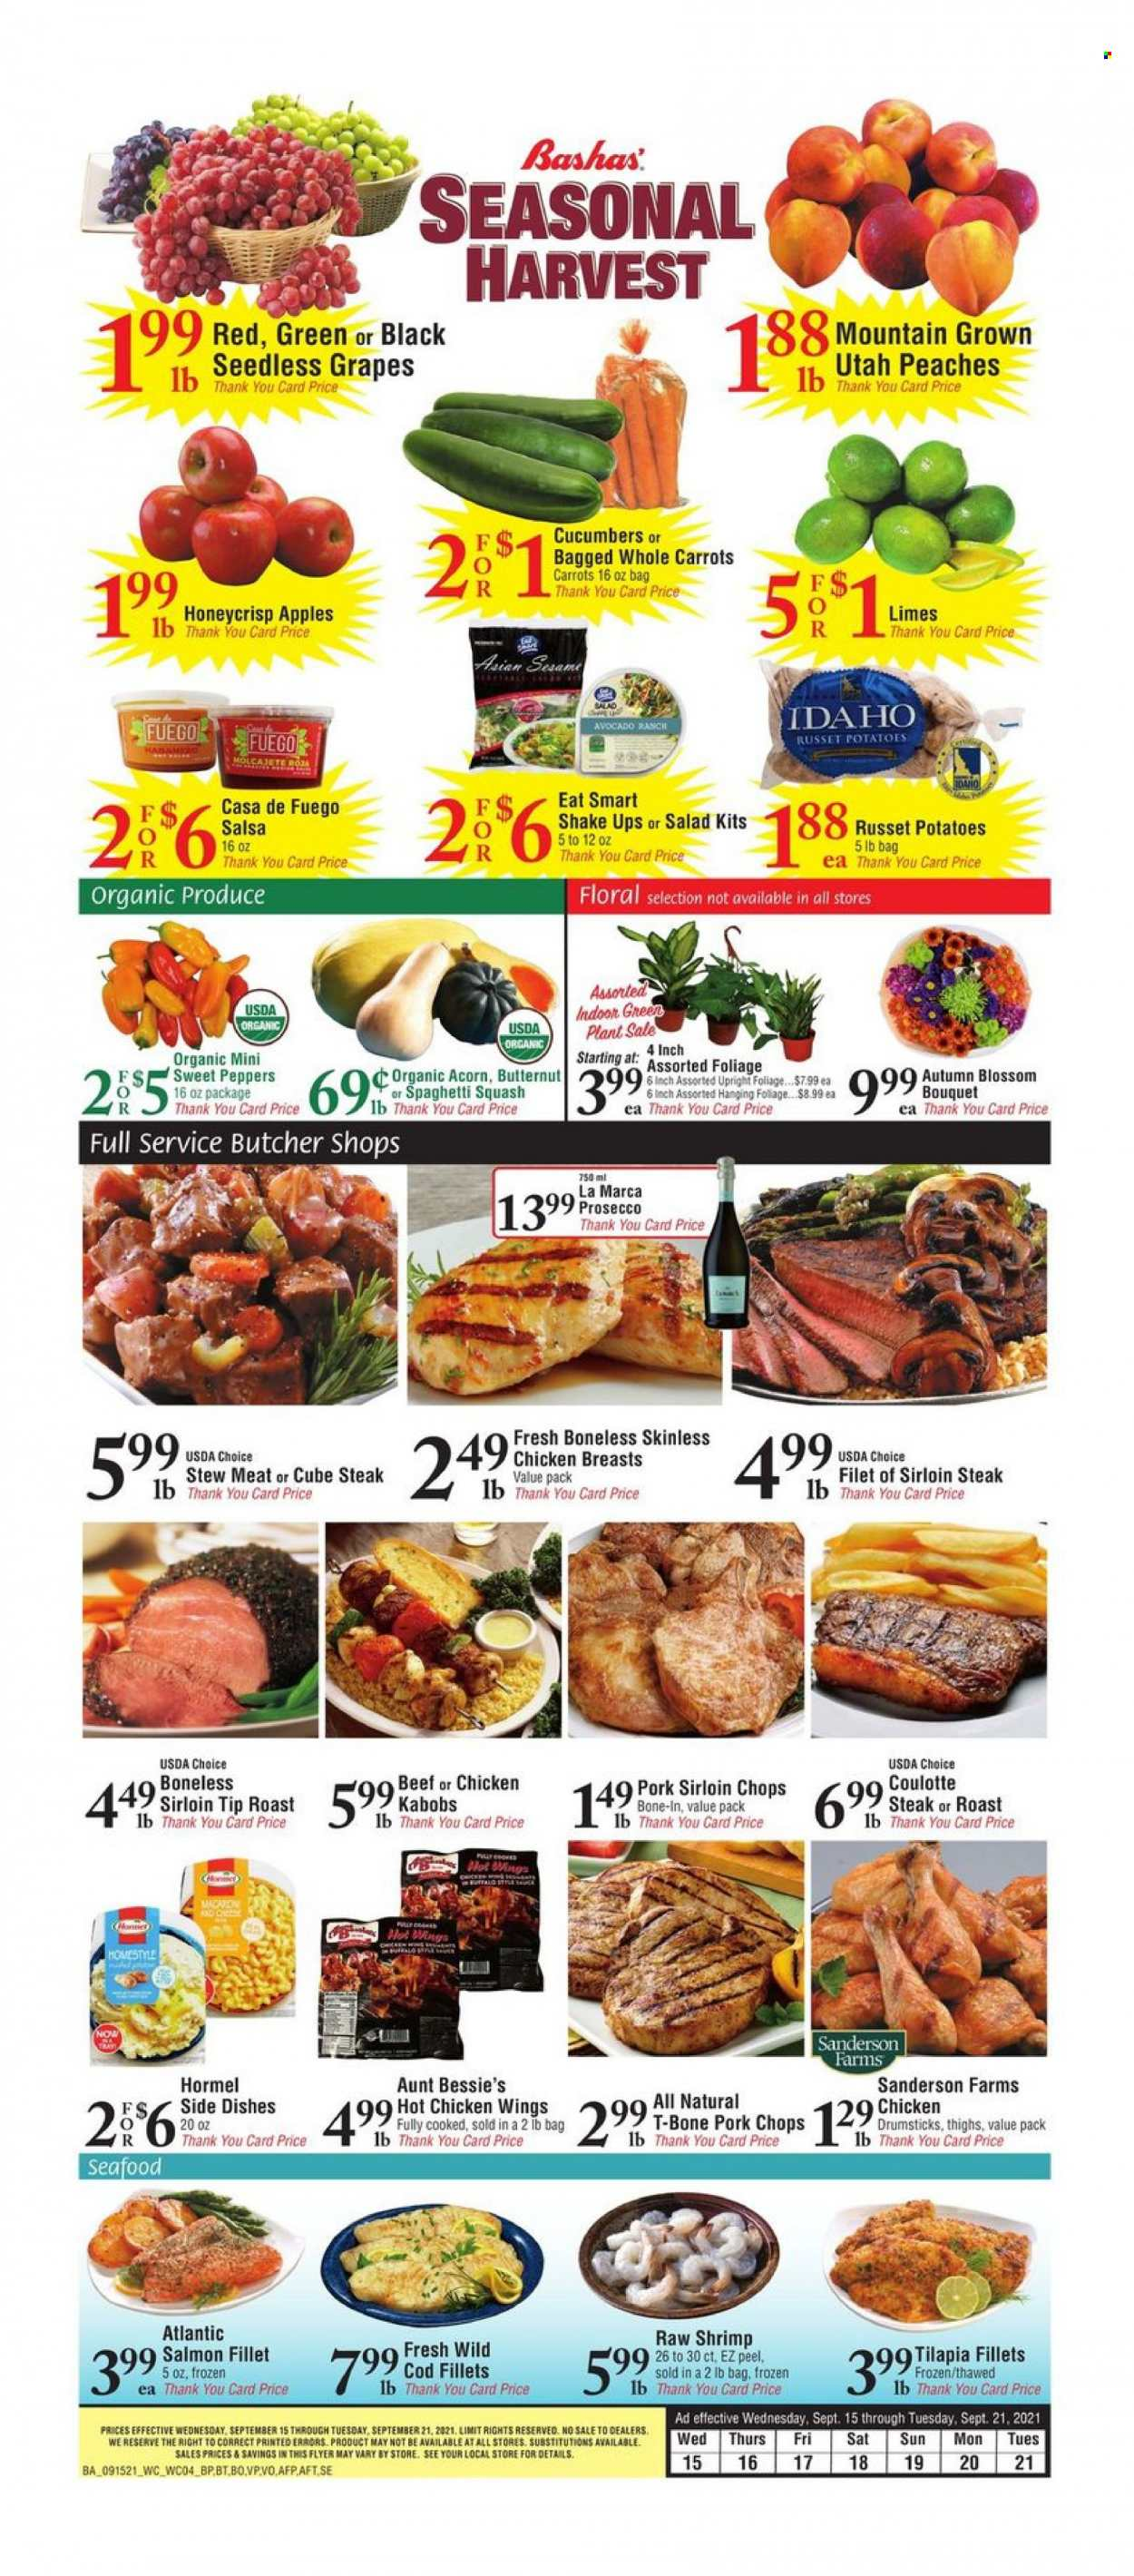 Bashas Ad from september 15 to 21 2021 - Page 4